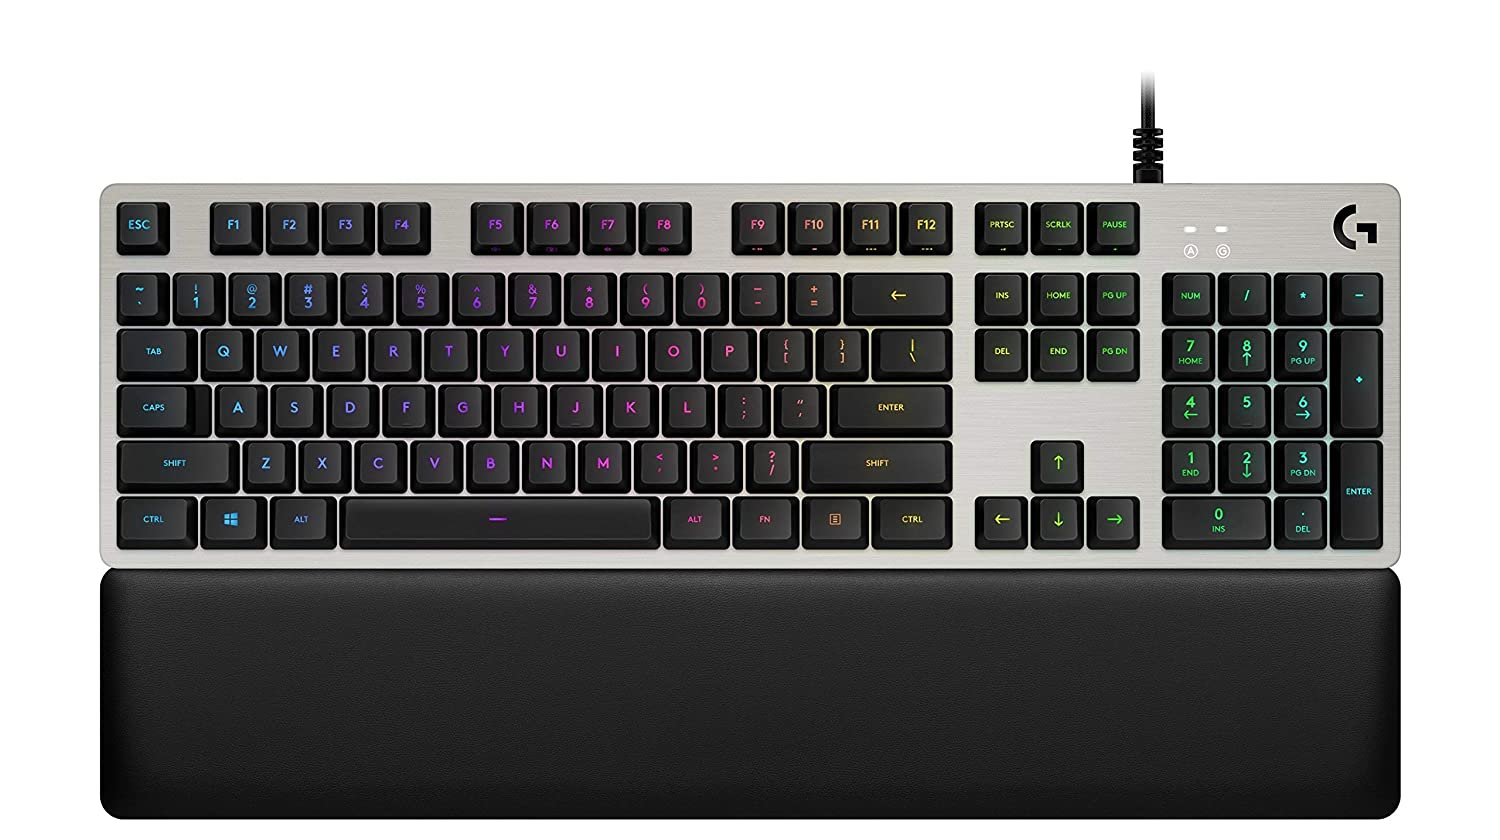 Amazon.com: Logitech G513 Keyboard in Silver (Certified Refurbished): Computers & Accessories